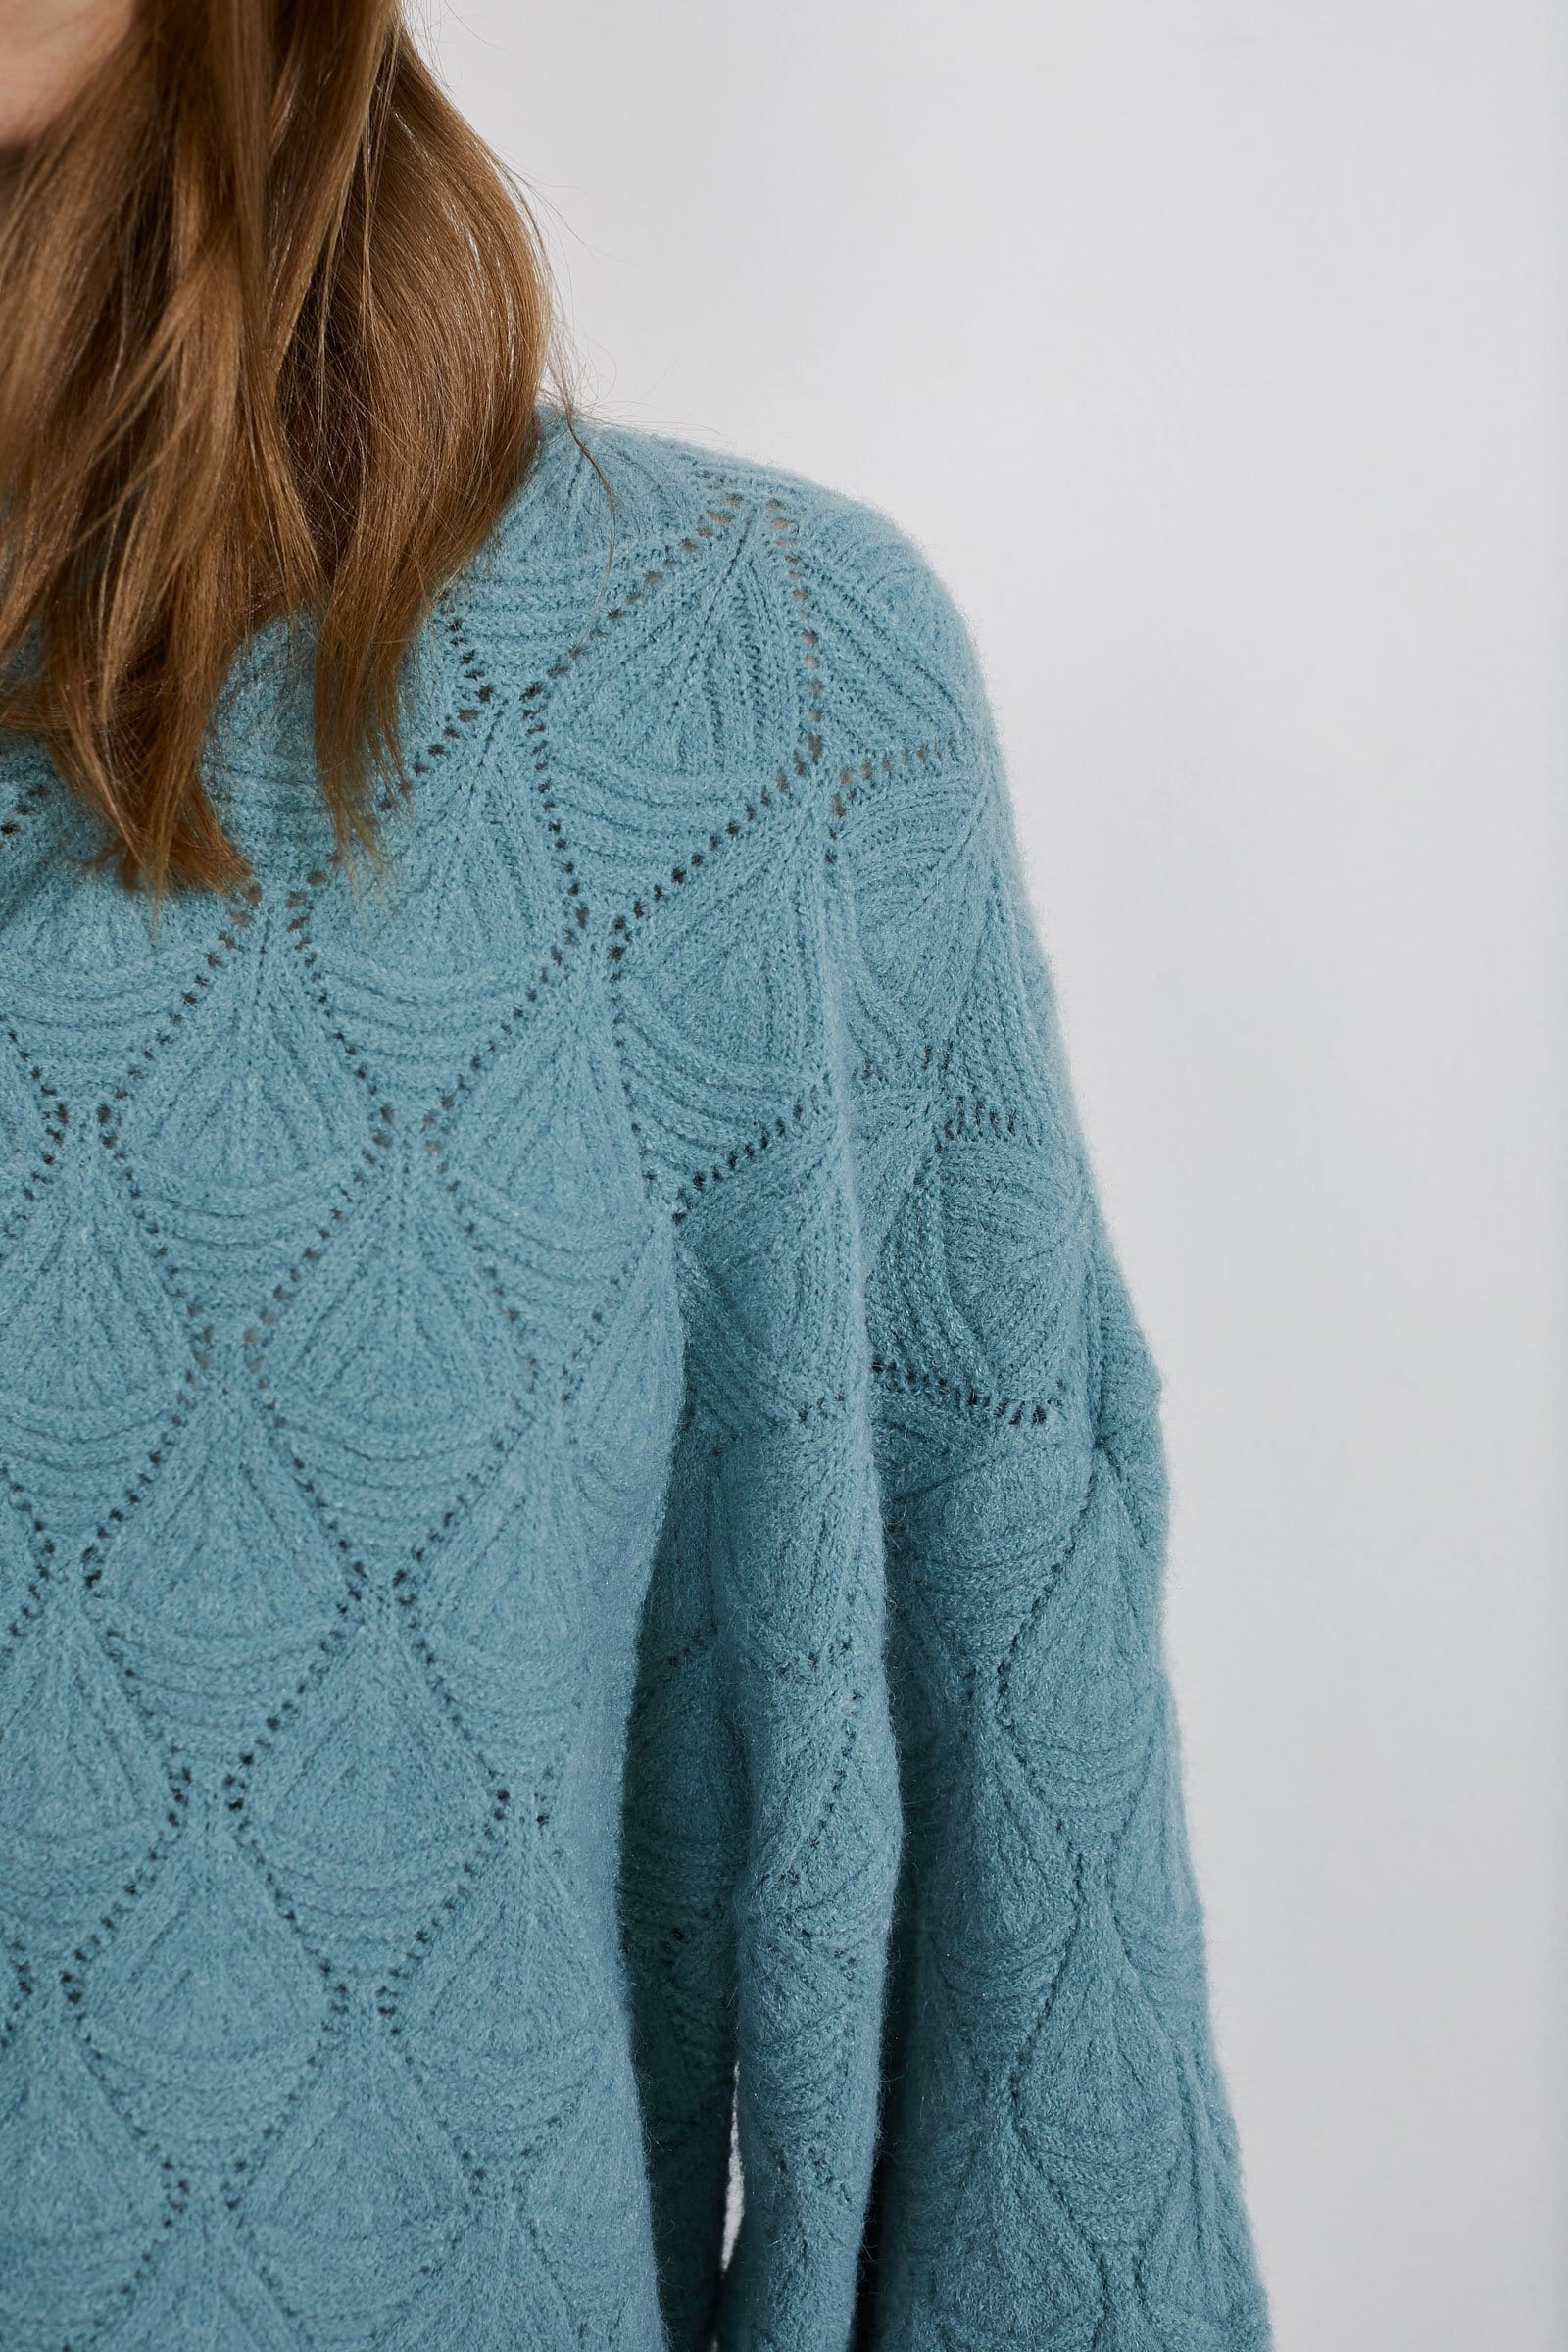 Diamante Teal Puff Sweater